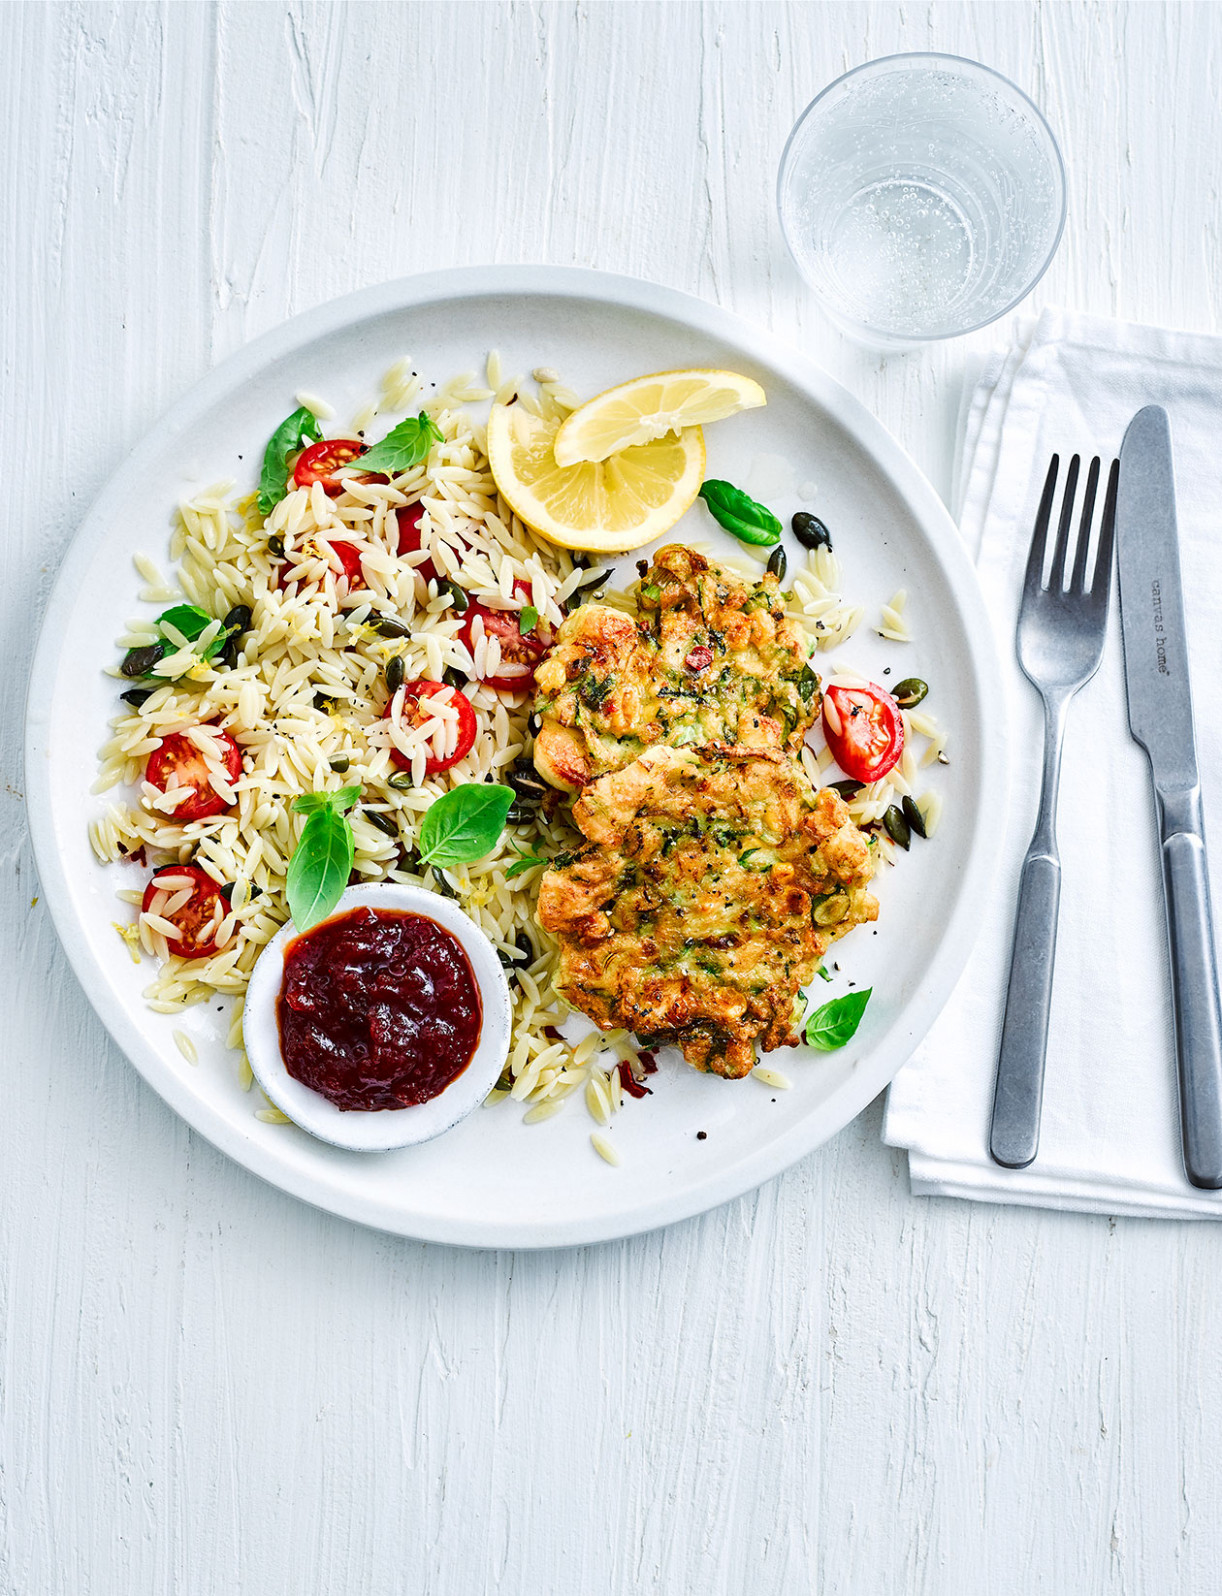 Halloumi fritters with pasta salad